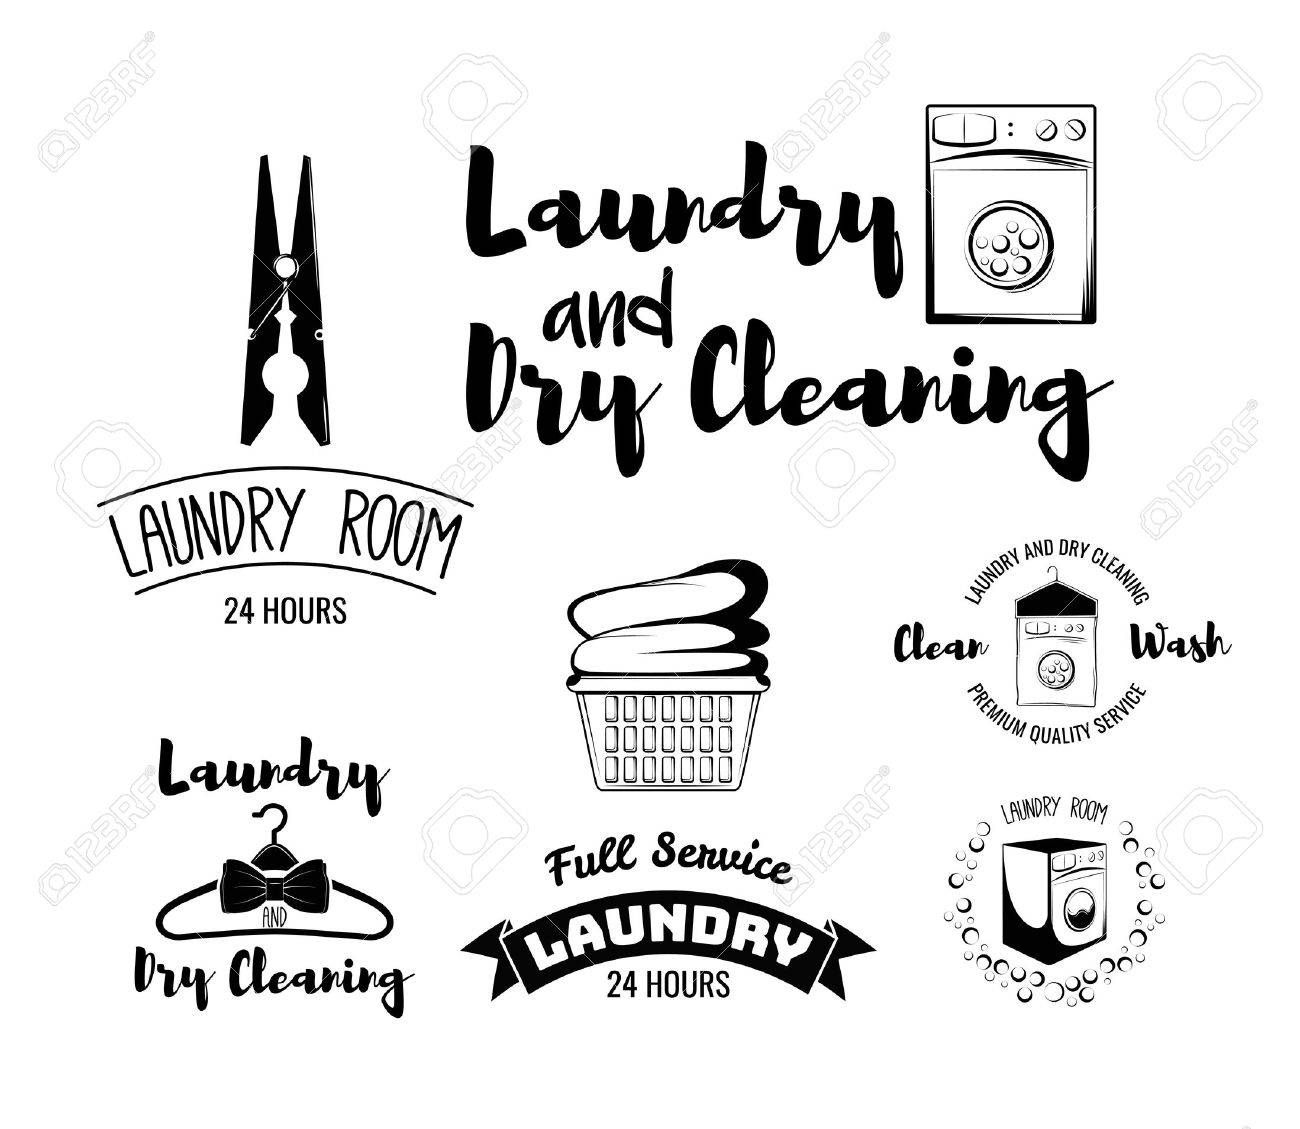 Laundry room and dry cleaning service, ironing service set